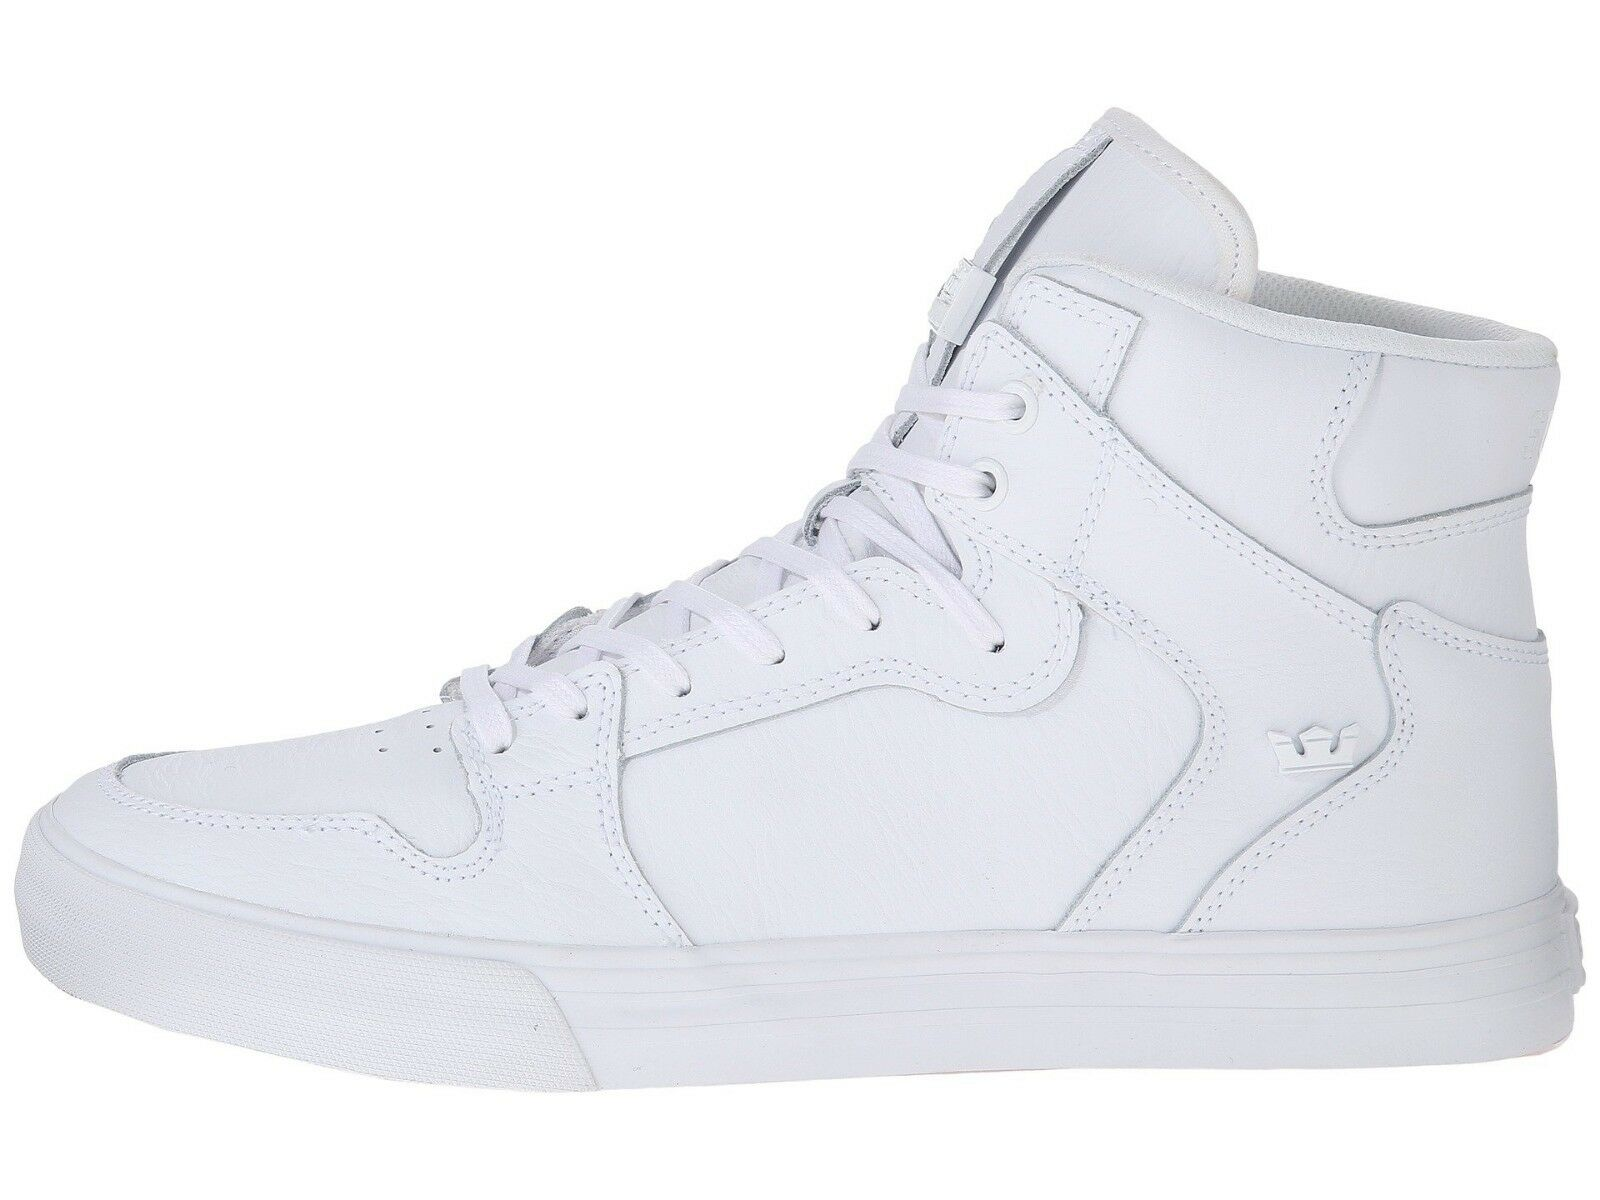 quality design 88280 defd5 NEW SUPRA VAIDER blanc blanc rouge 082018 SKATEBOARDING Chaussures SIZE USA  12